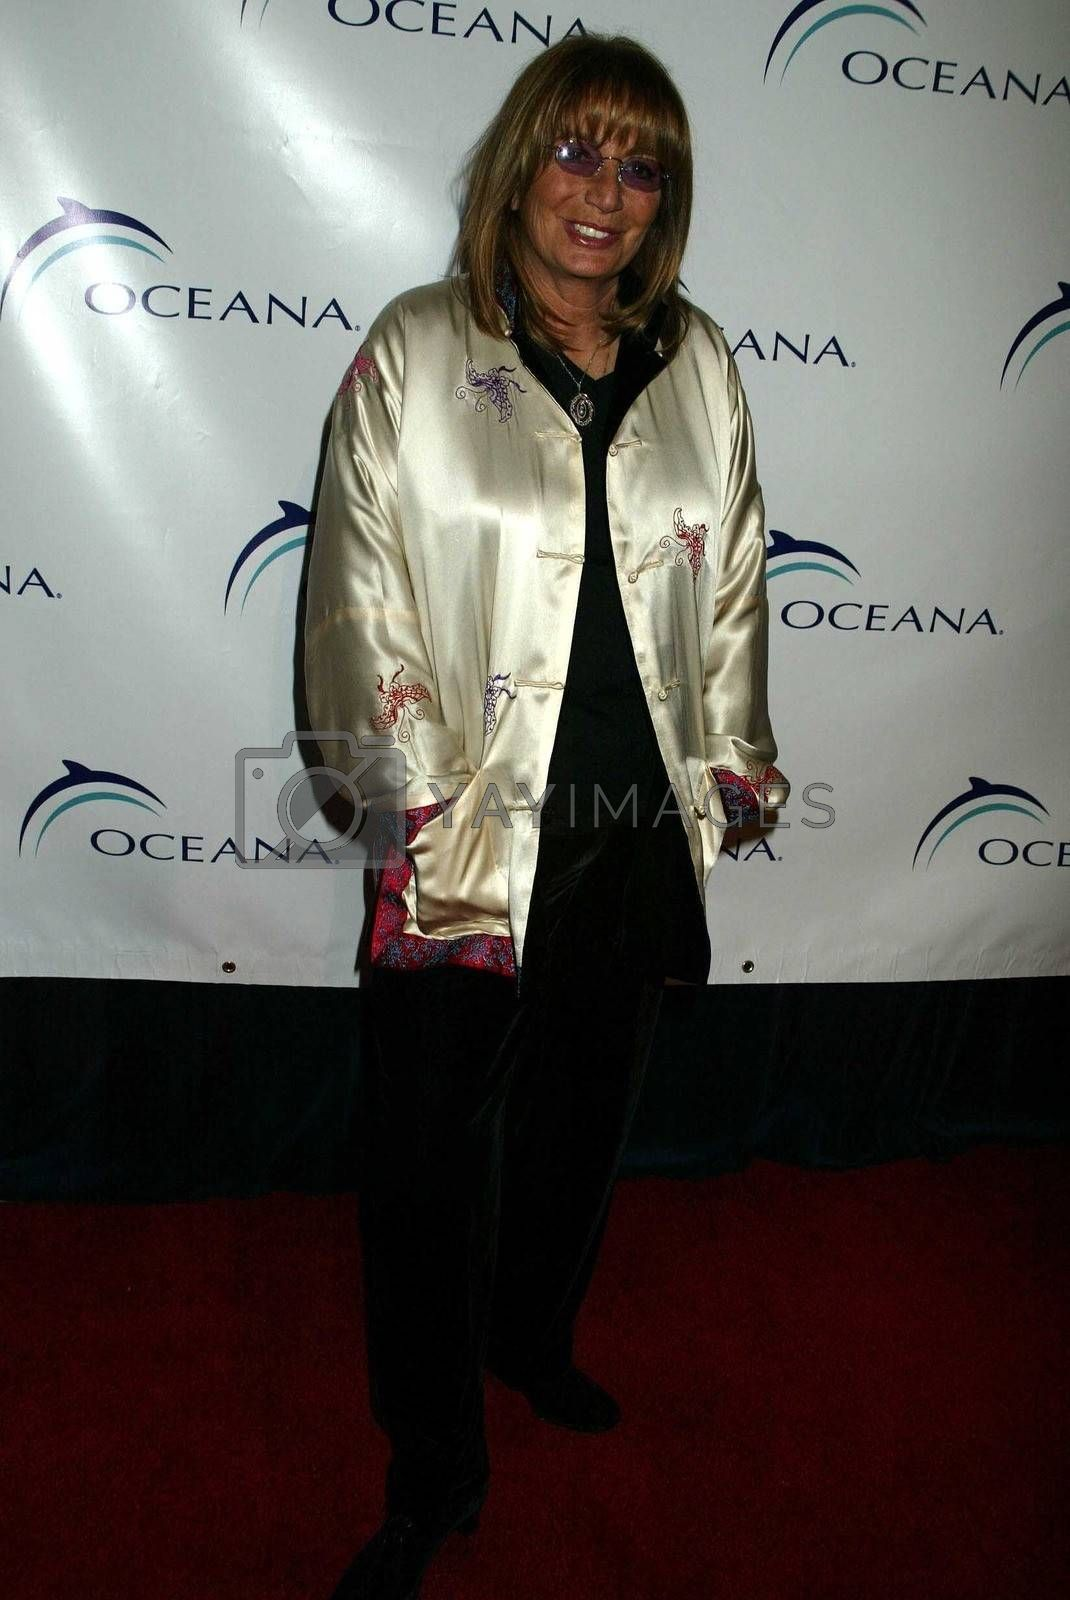 Royalty free image of at the 1st Annual Oceana Dinner, Century Plaza Hotel, Century City, CA 12-03-03 by ImageCollect